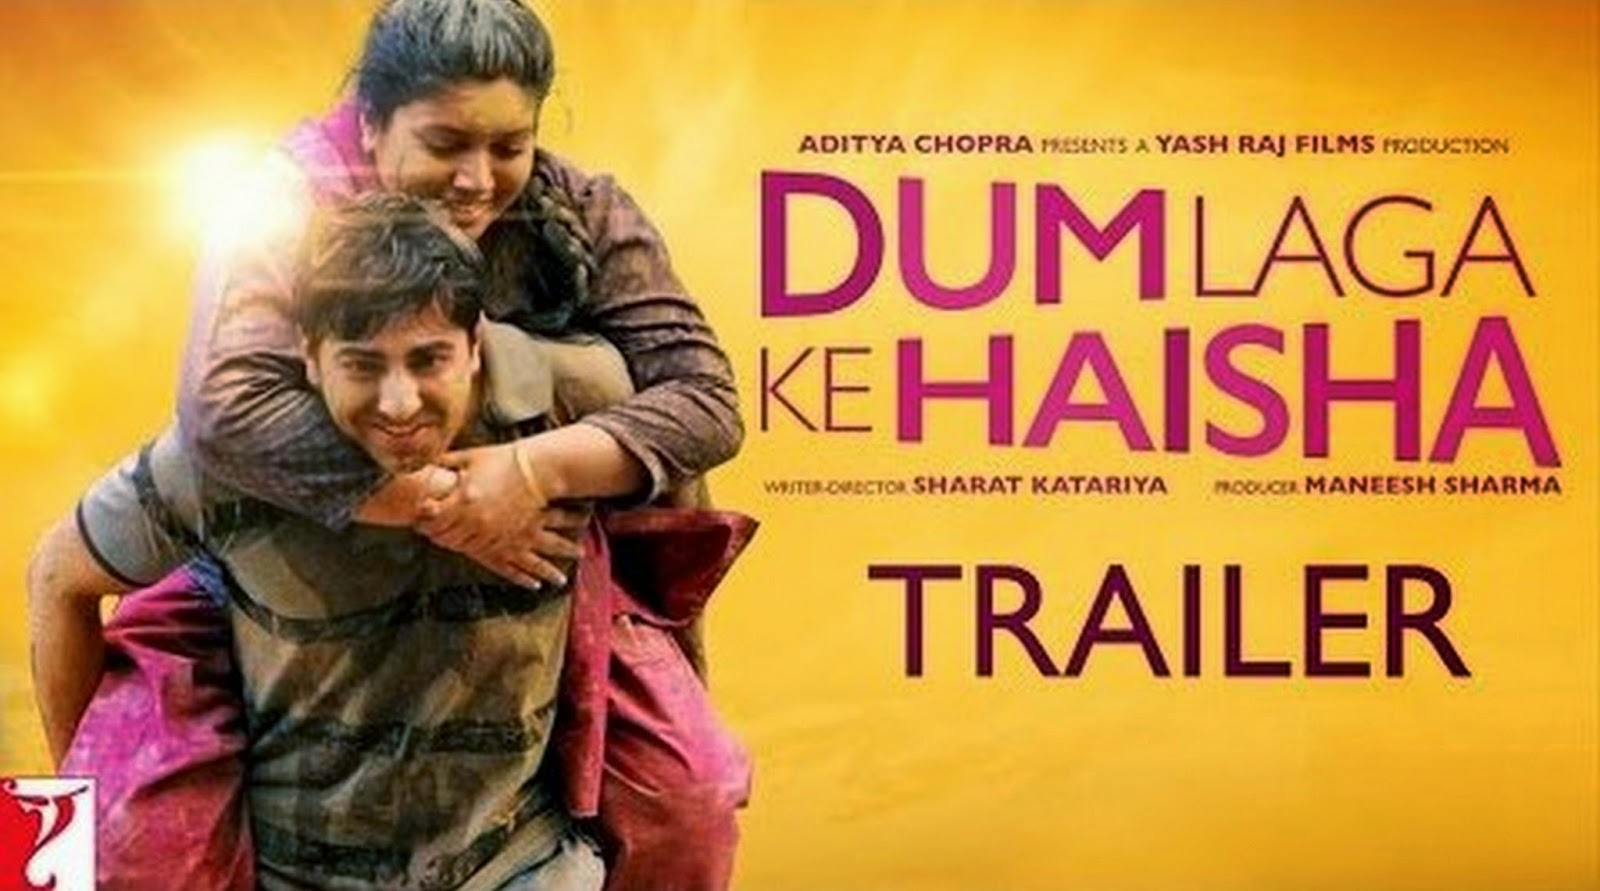 Review: dum laga ke haisha music makes you nostalgic rediff. Com.